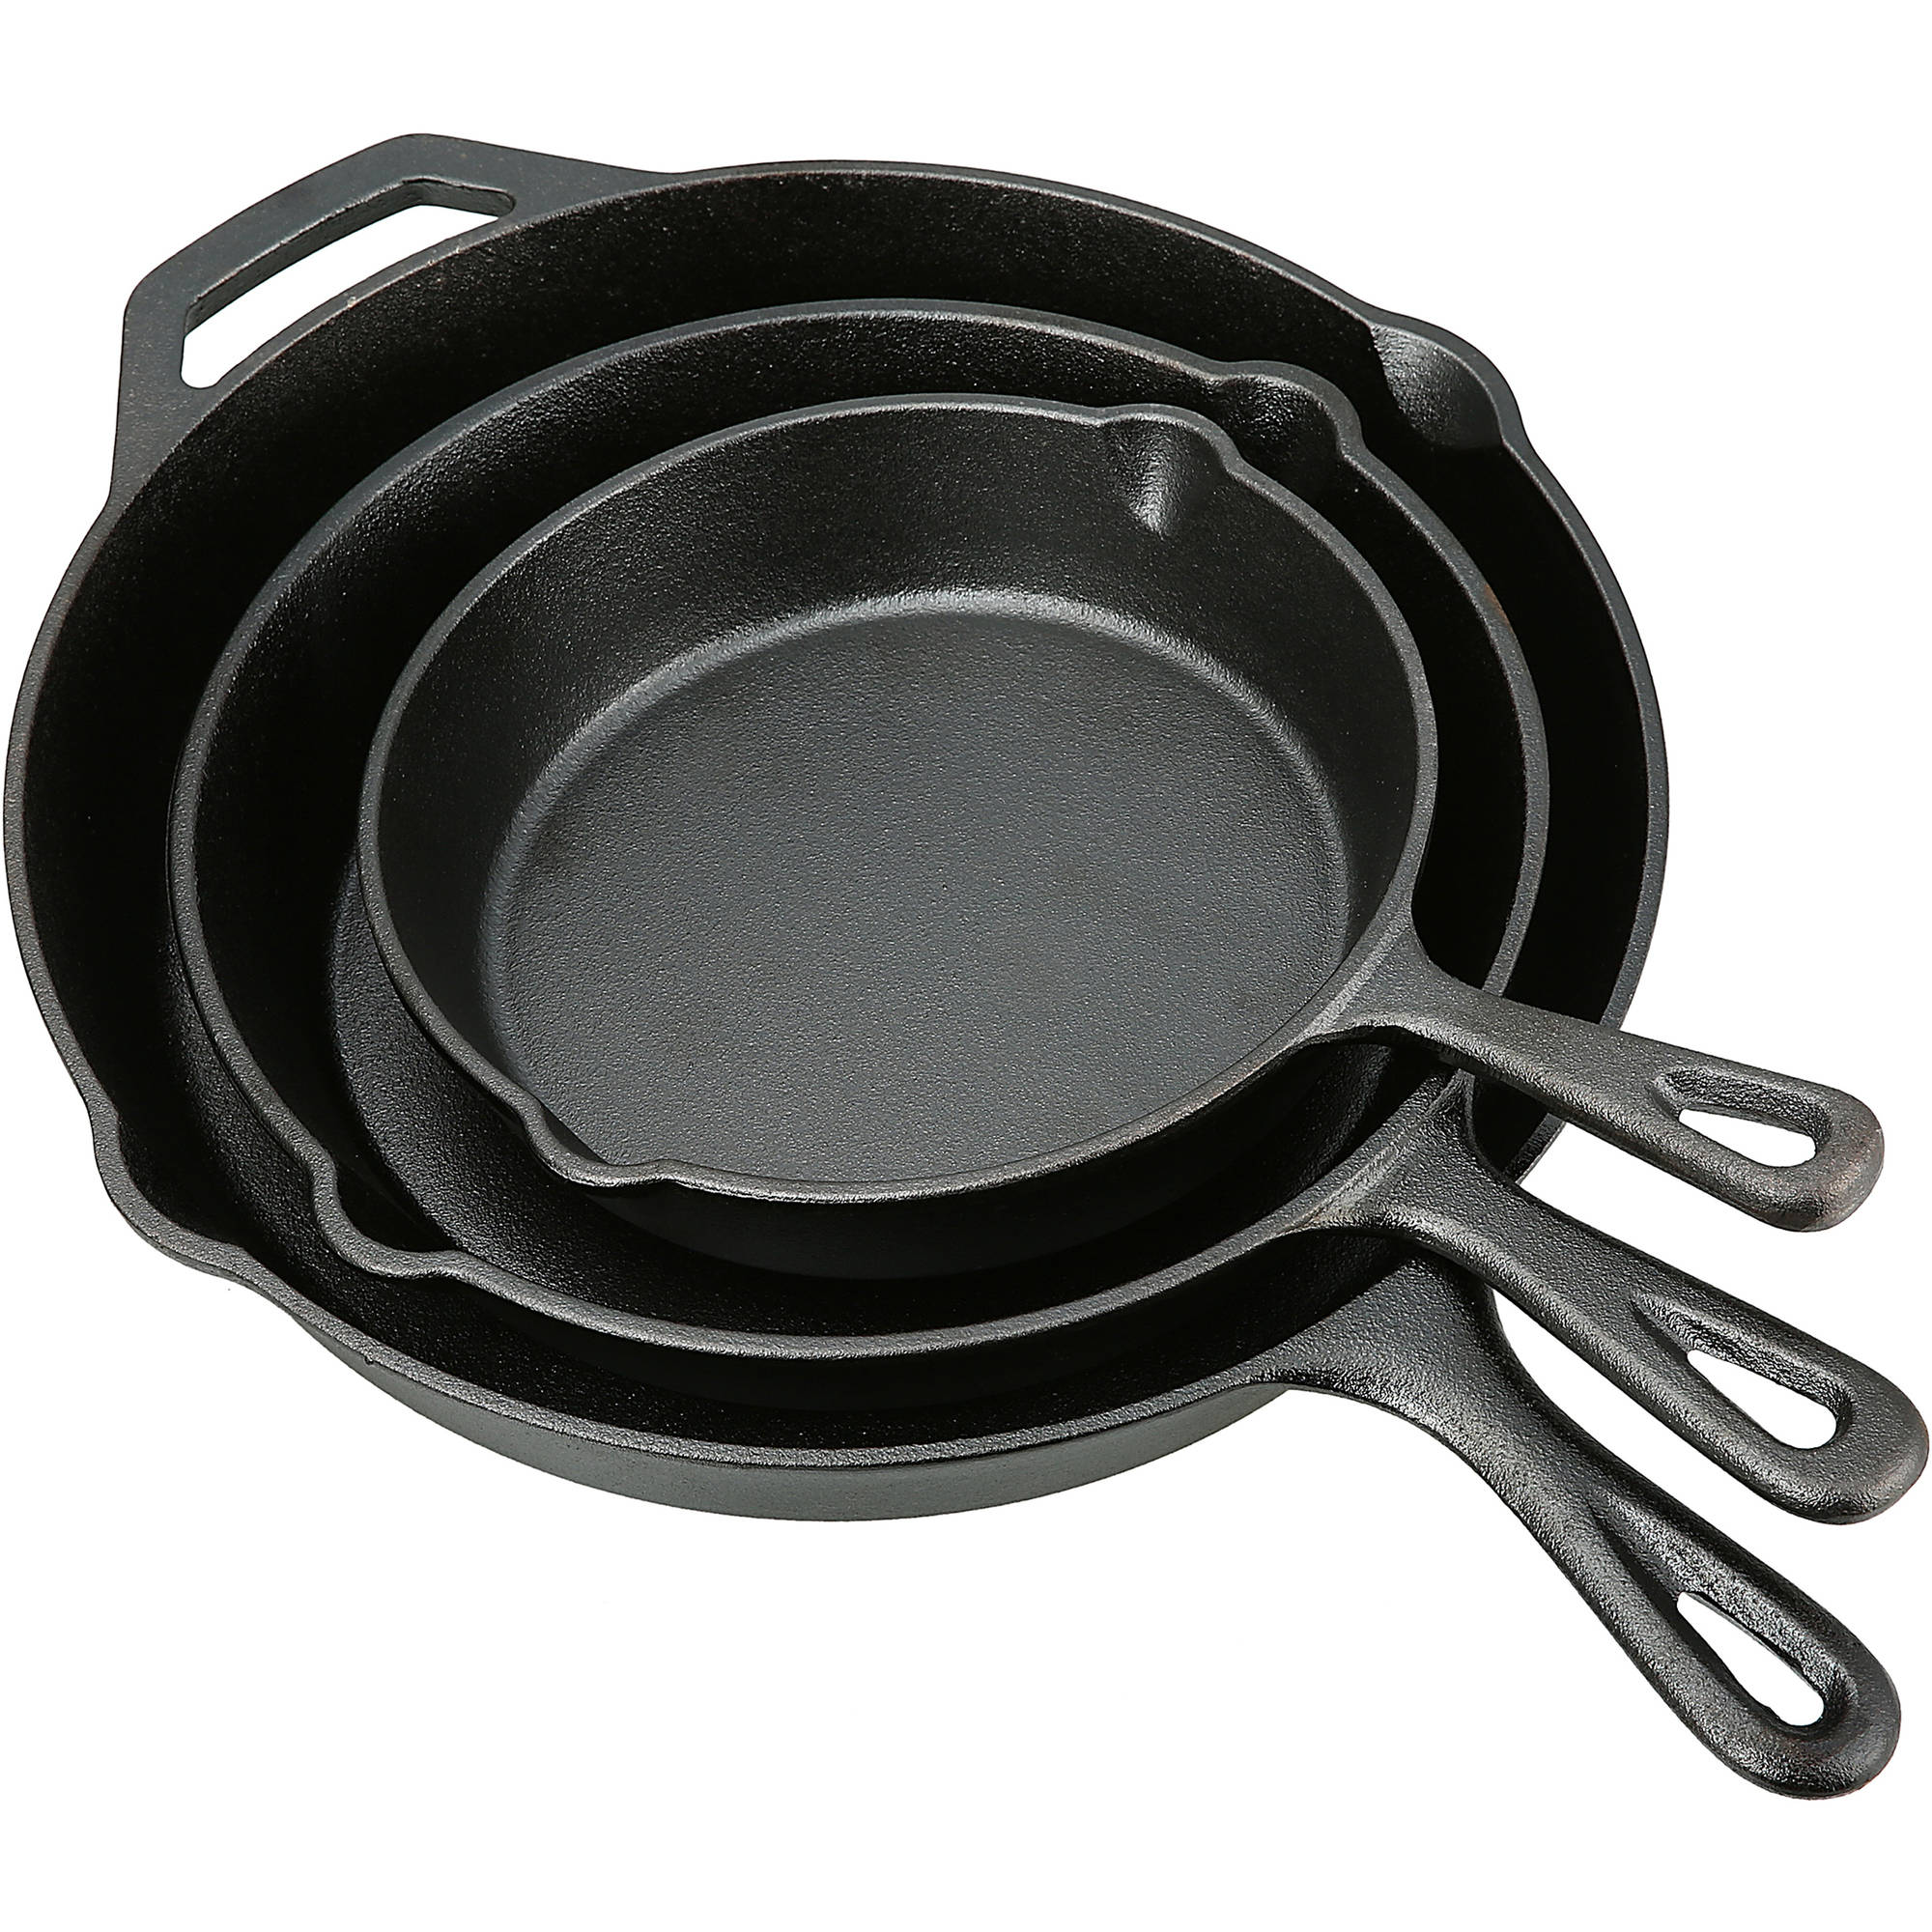 Ozark Trail 3 Piece Seasoned Oil Cast Iron Skillet Set